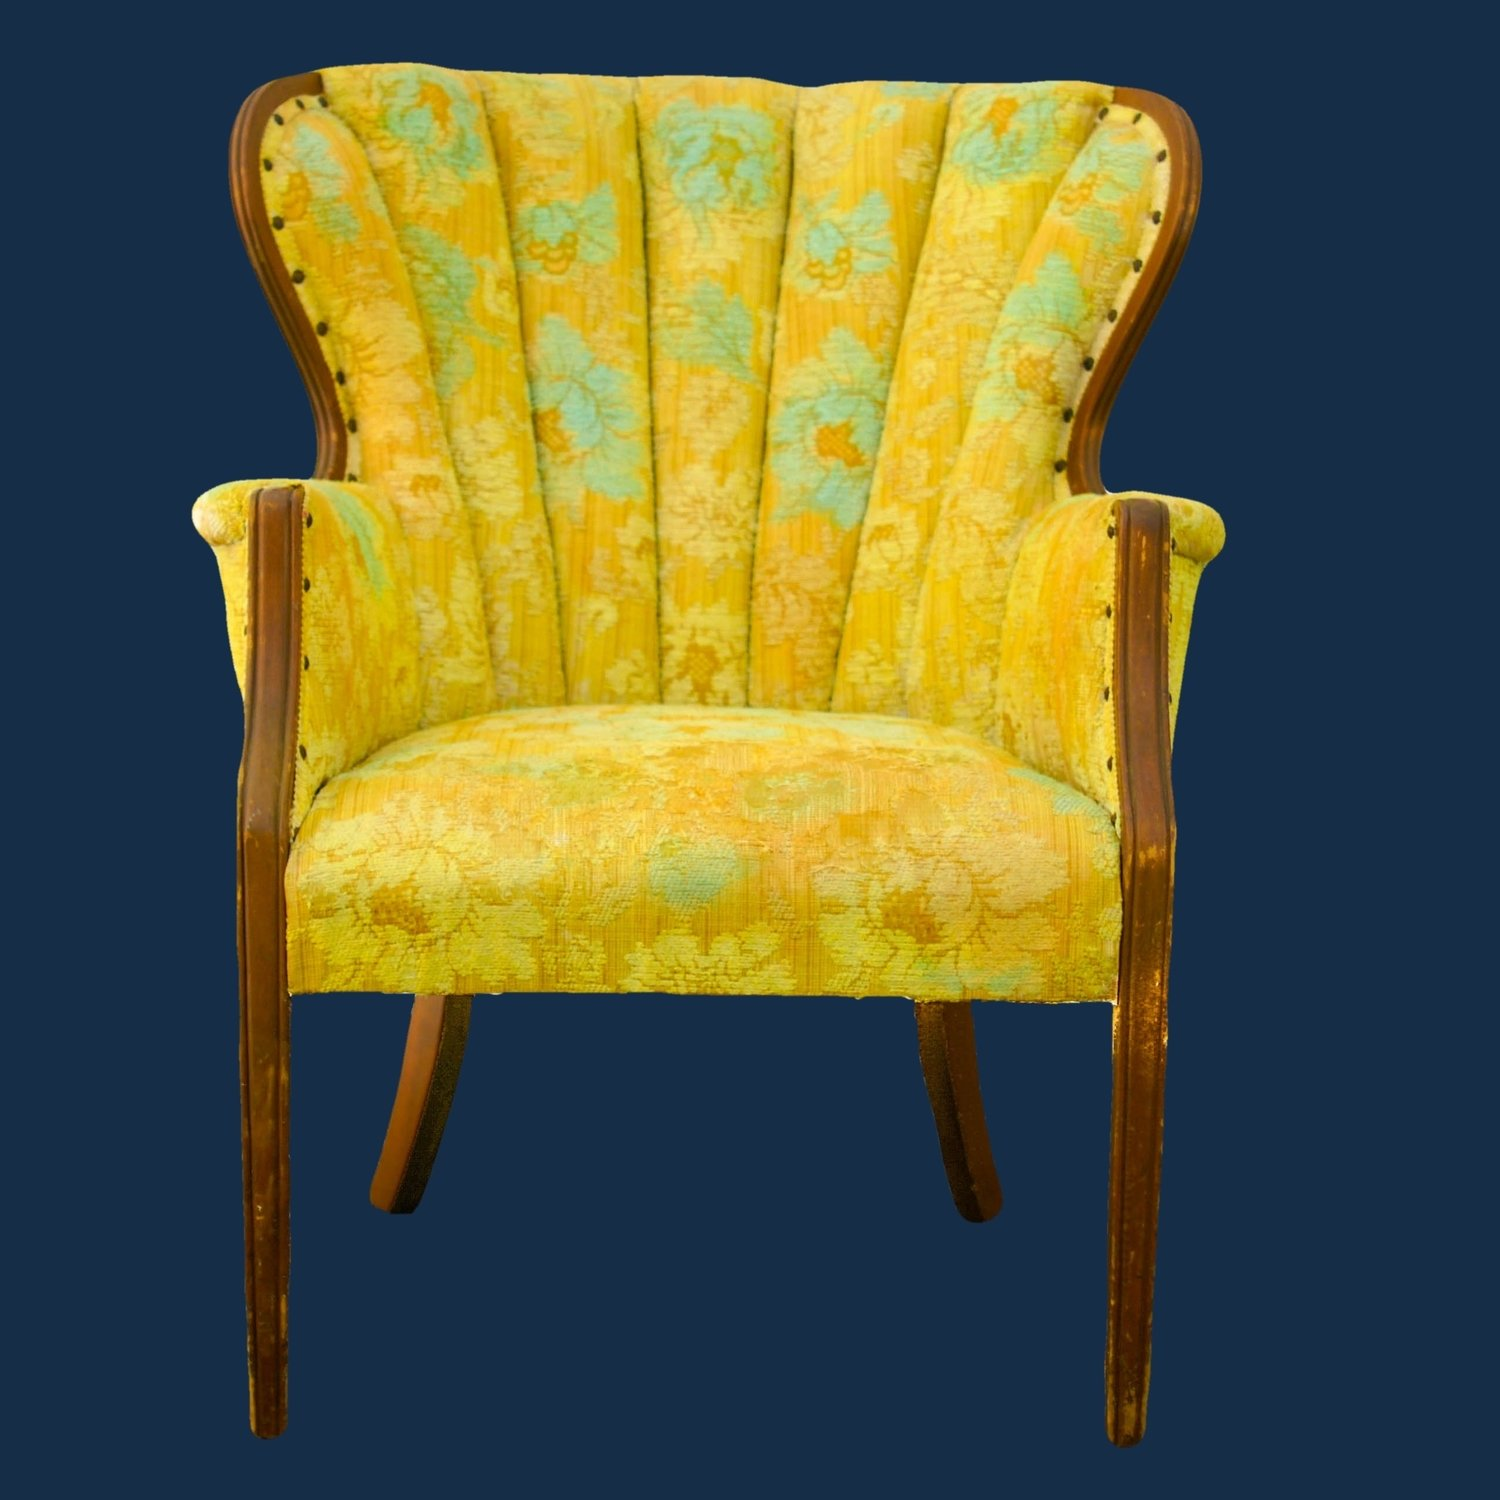 OFF Overdyed Bright Yellow & Aqua Chair